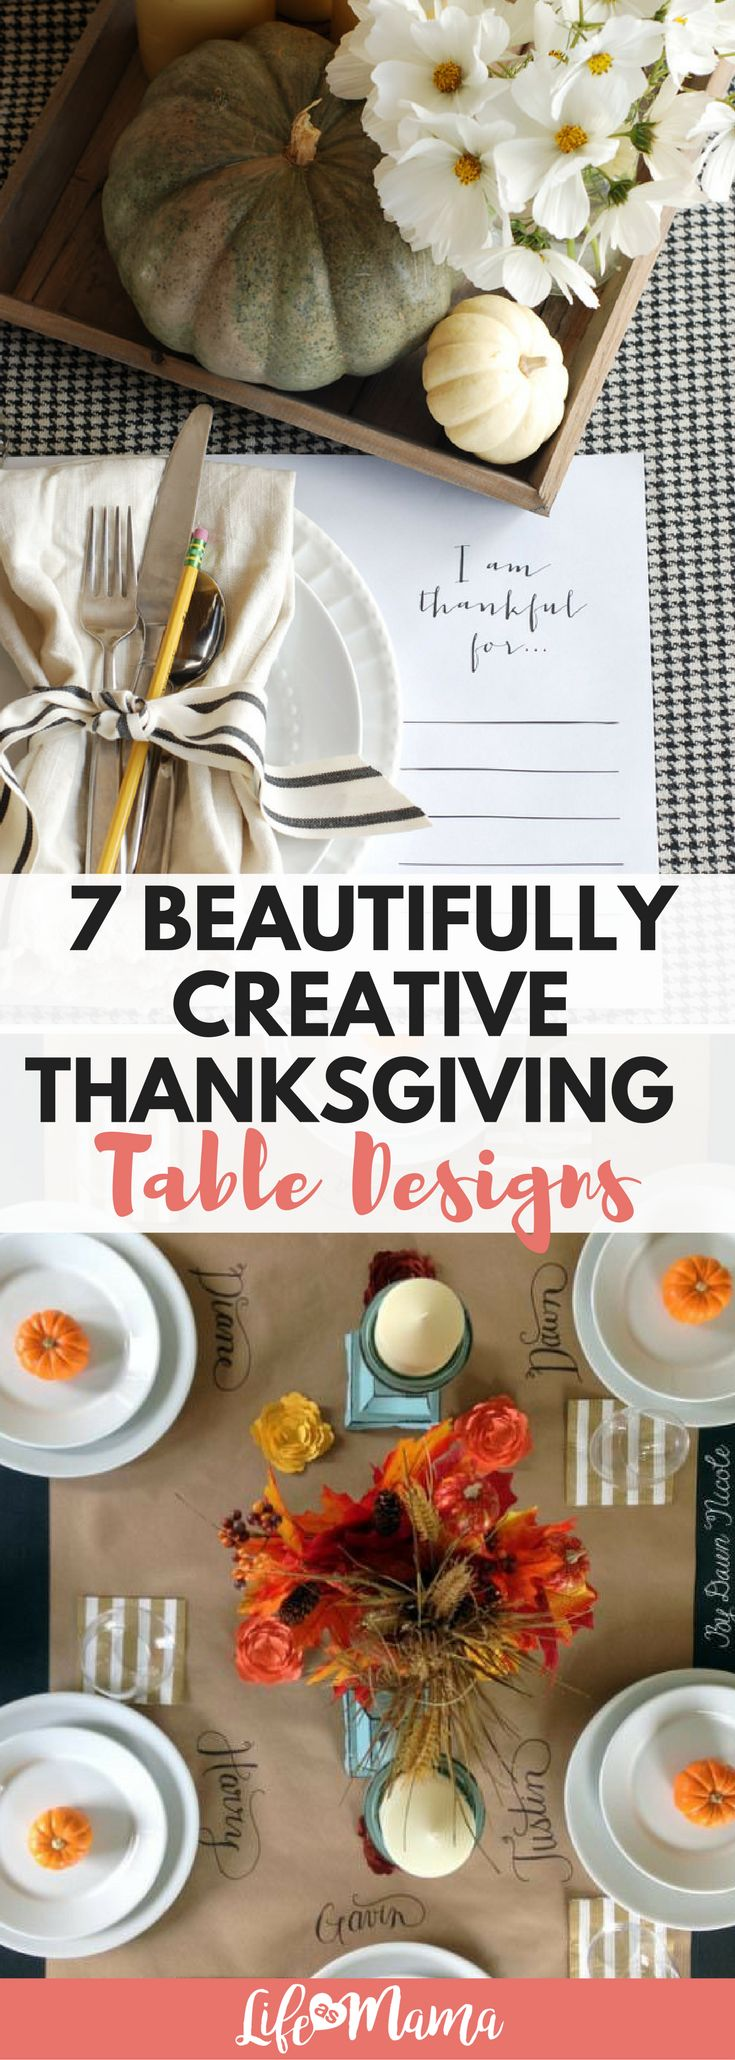 These Thanksgiving table designs are gorgeous! Dress up your table setting this year. #thanksgiving